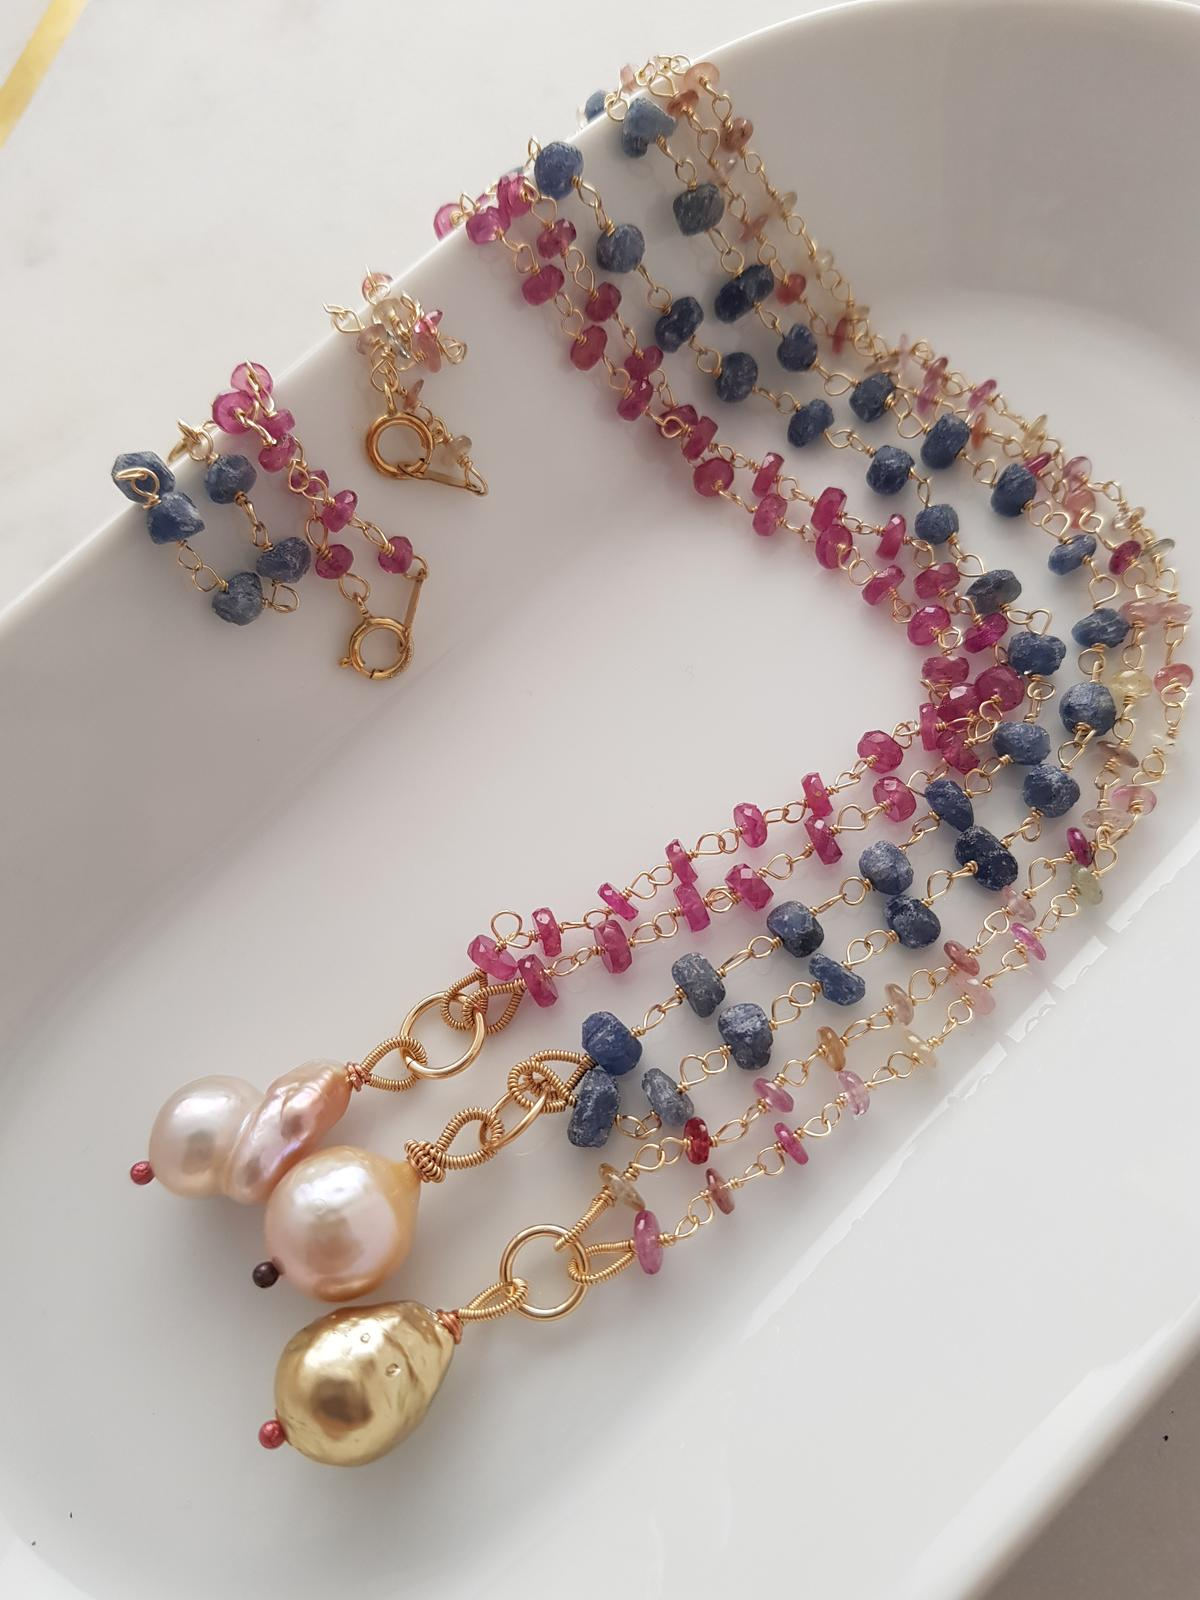 Vintage nucleated freshwater pearls, and sapphires 14kt gold filled hand wired.